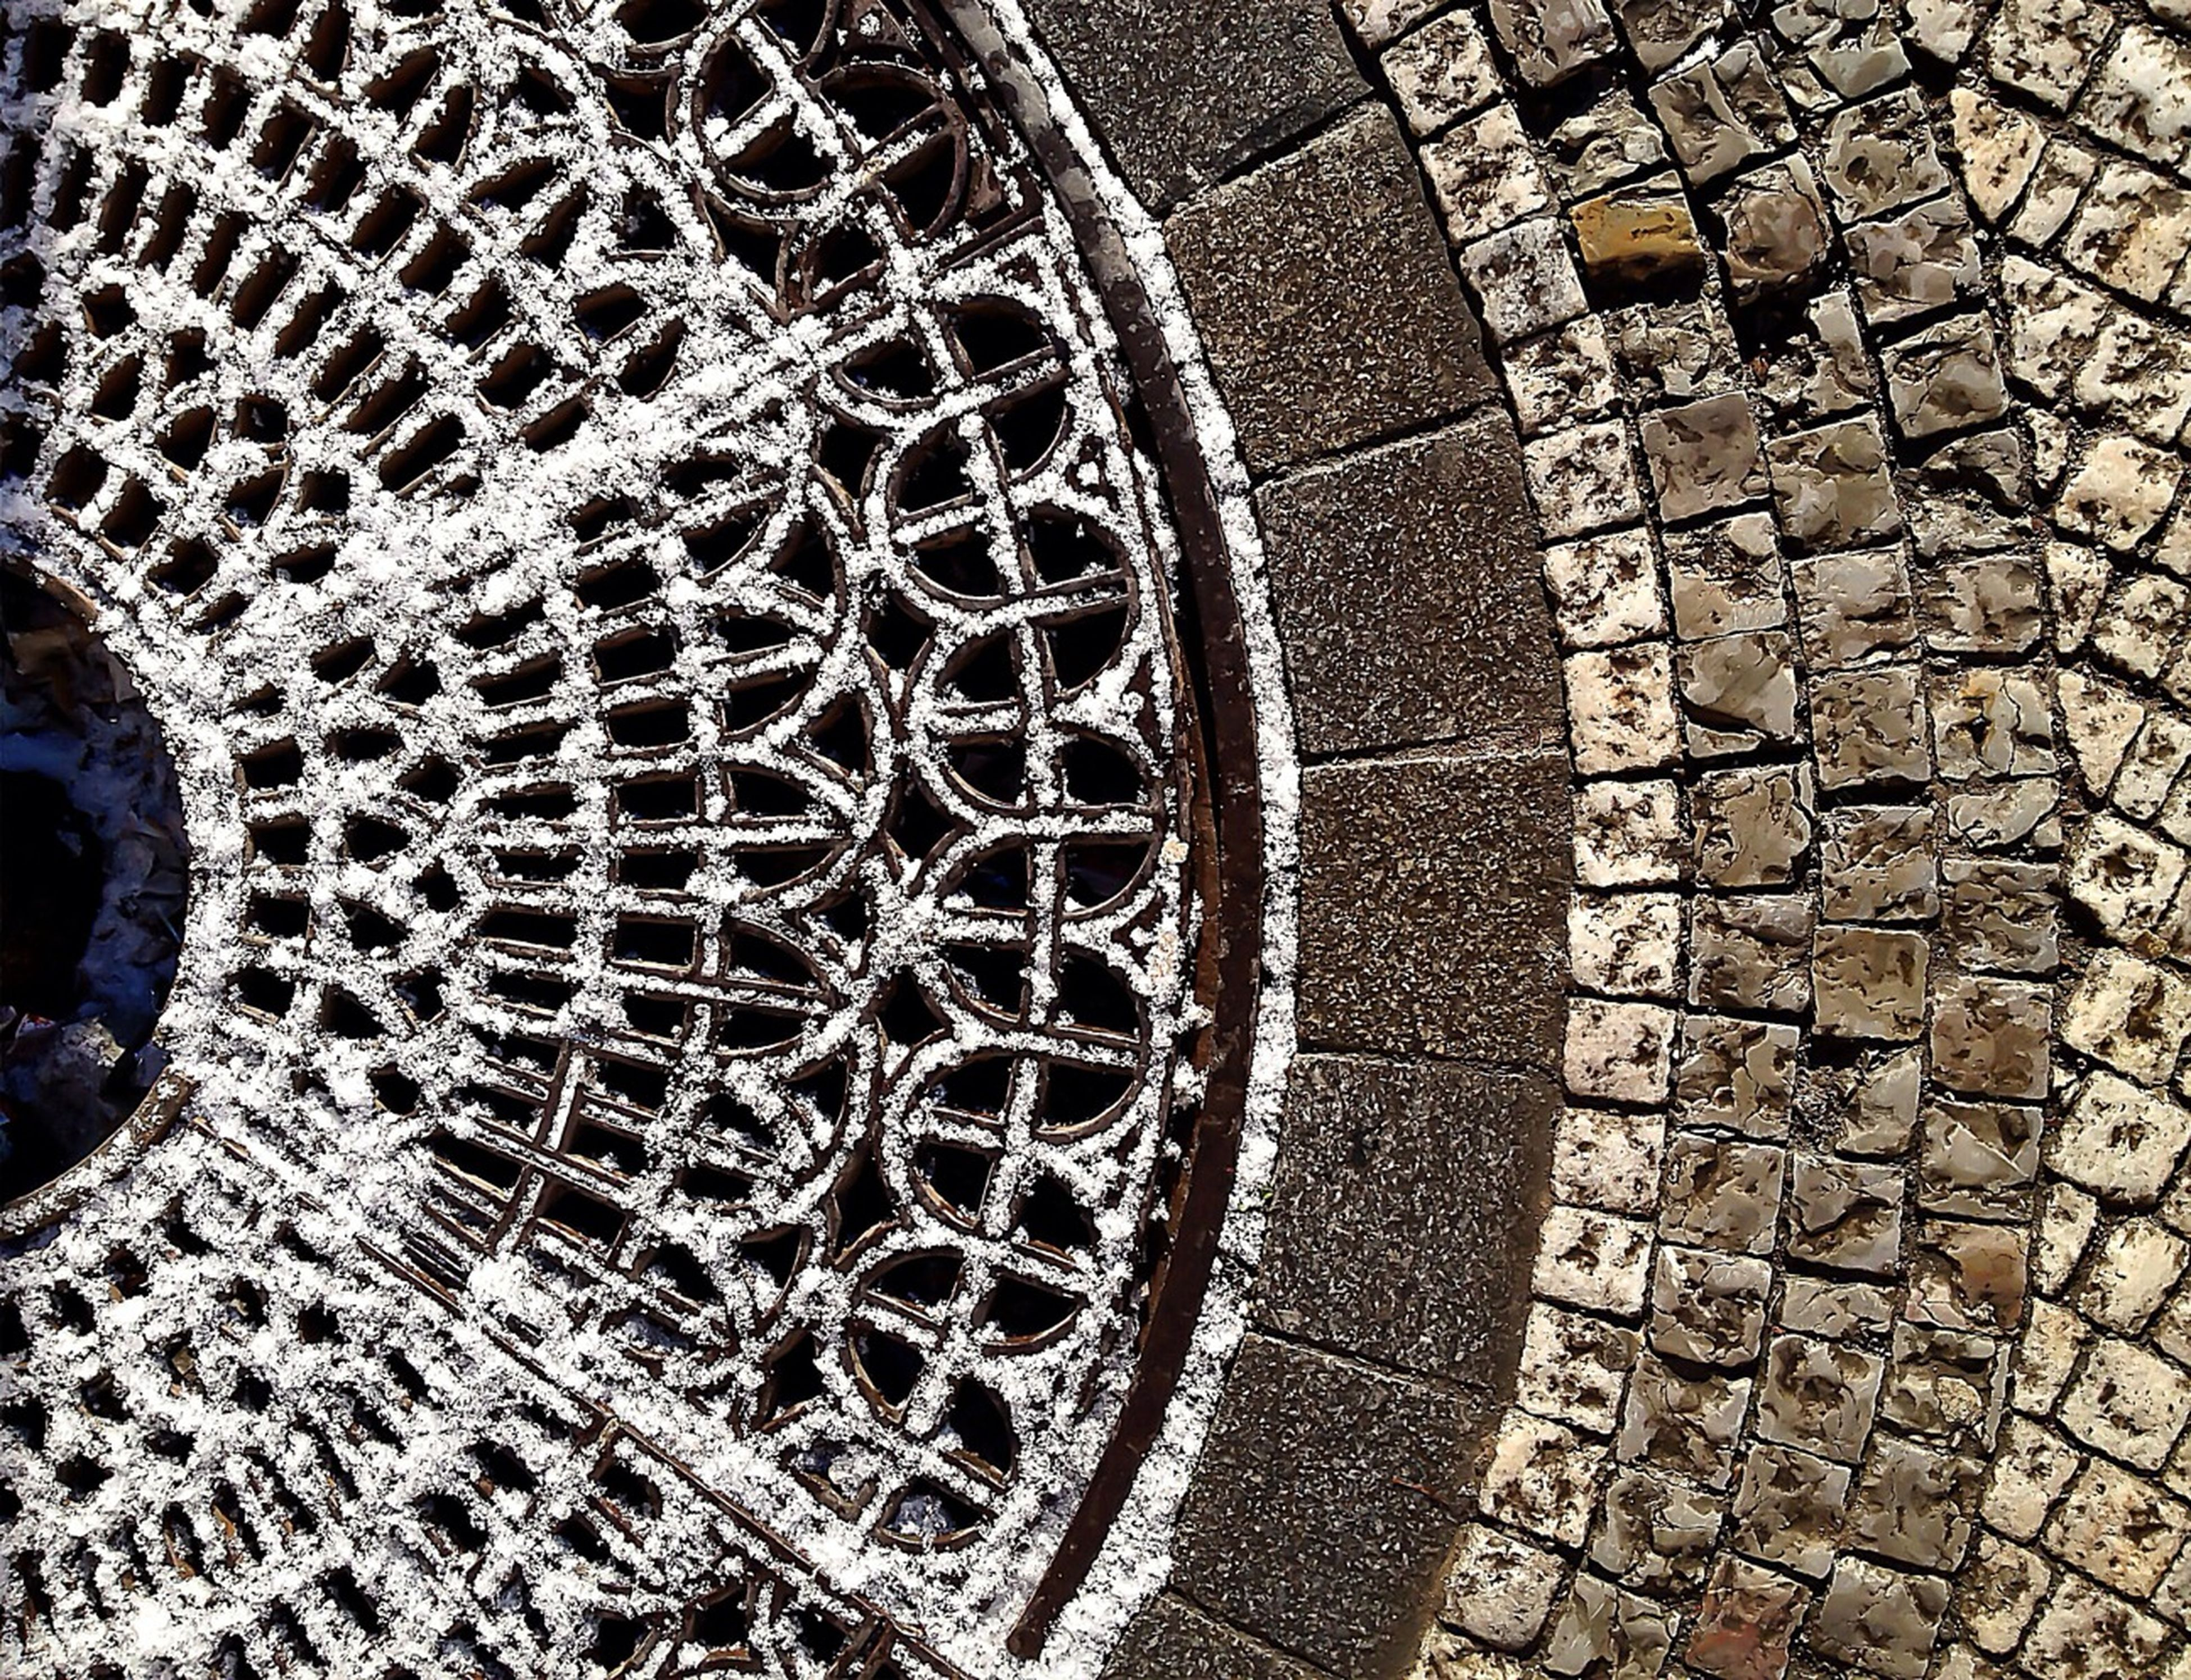 pattern, cobblestone, circle, design, high angle view, built structure, architecture, paving stone, geometric shape, full frame, metal, backgrounds, textured, outdoors, day, manhole, footpath, no people, street, shape